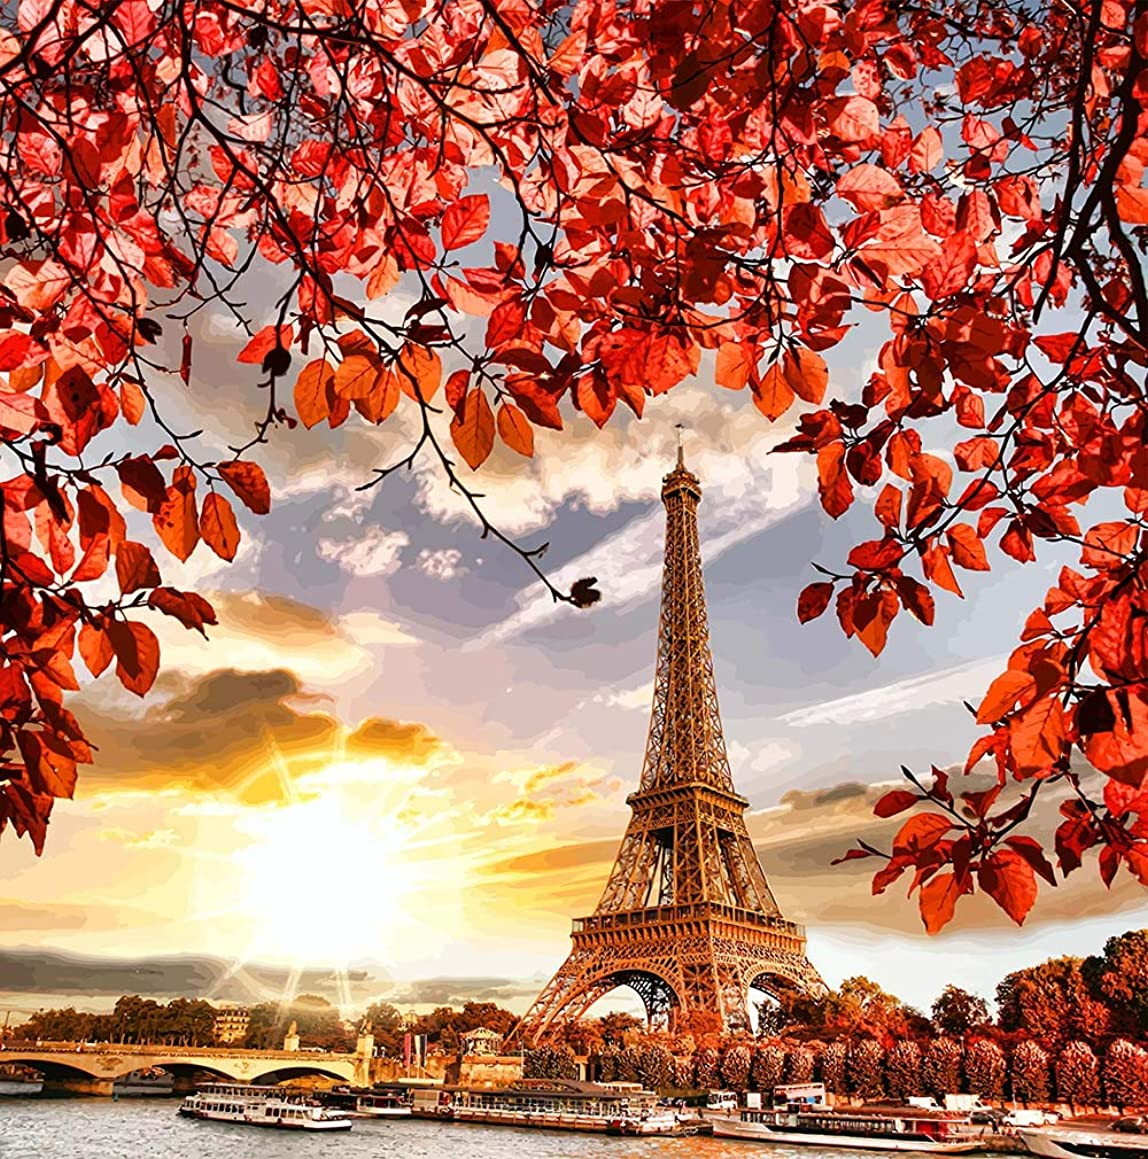 Diamond Painting Kits for Adults - DIY 5D Diamond Painting Full Drill Eiffel Tower - Great Bedroom, Living Room or Home Wall Decor (15.7 x15.7inch)